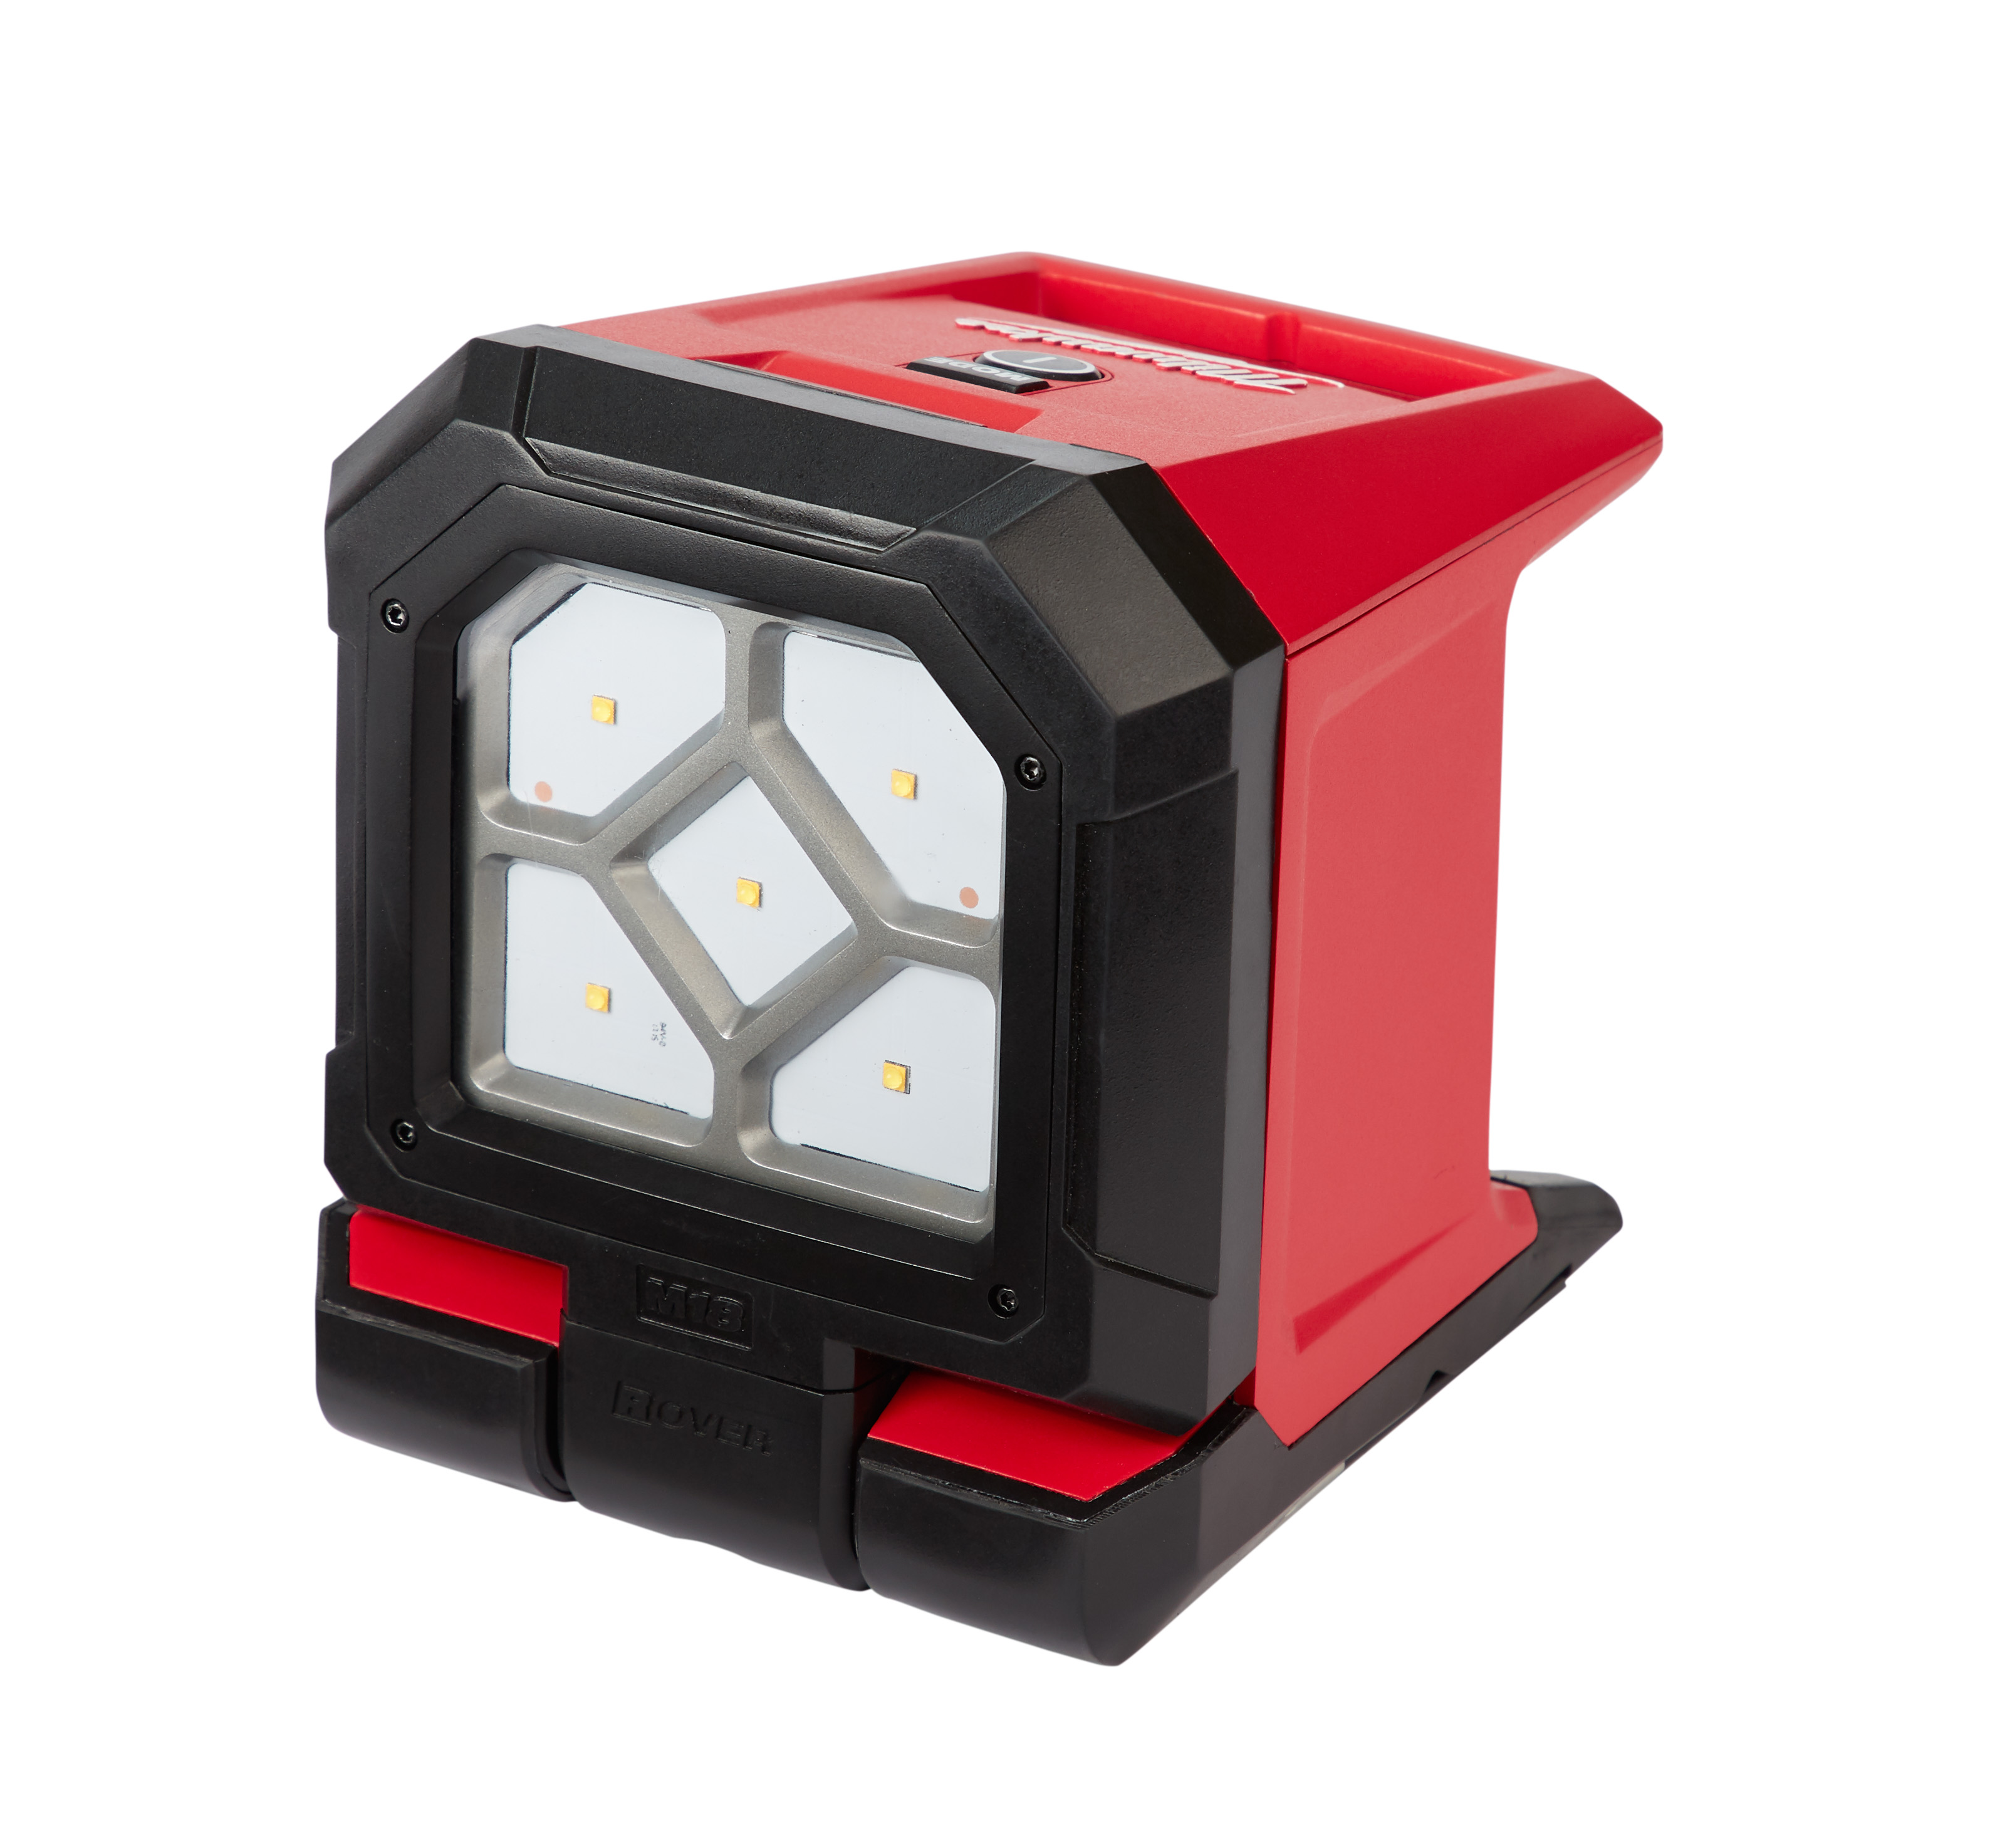 MILW 2365-20 M18 ROVER MOUNTING FLOOD LIGHT